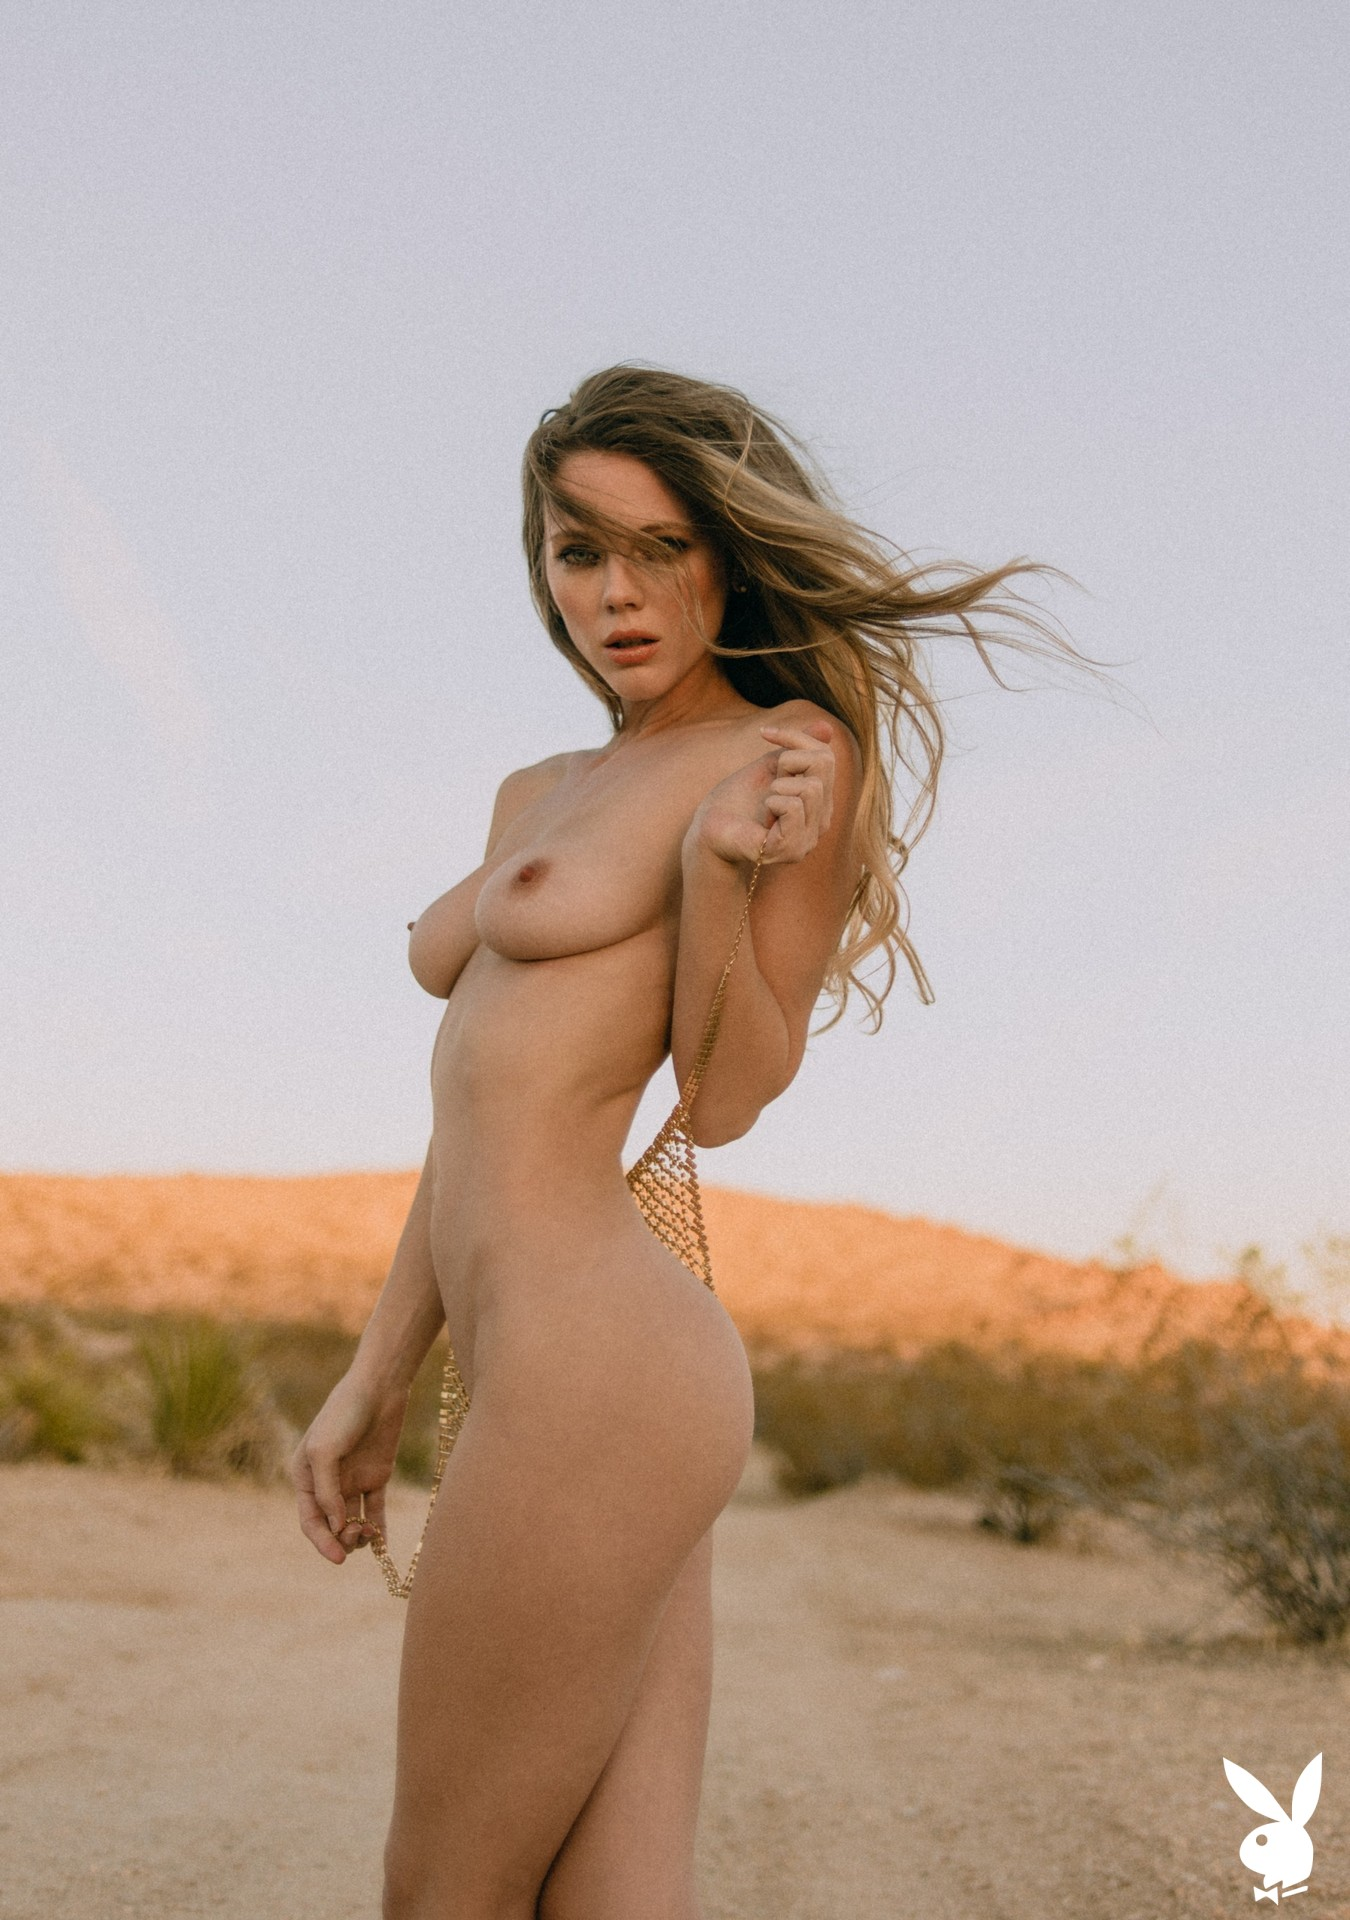 Ora Young In Dessert Shimmer Playboy Plus (16)